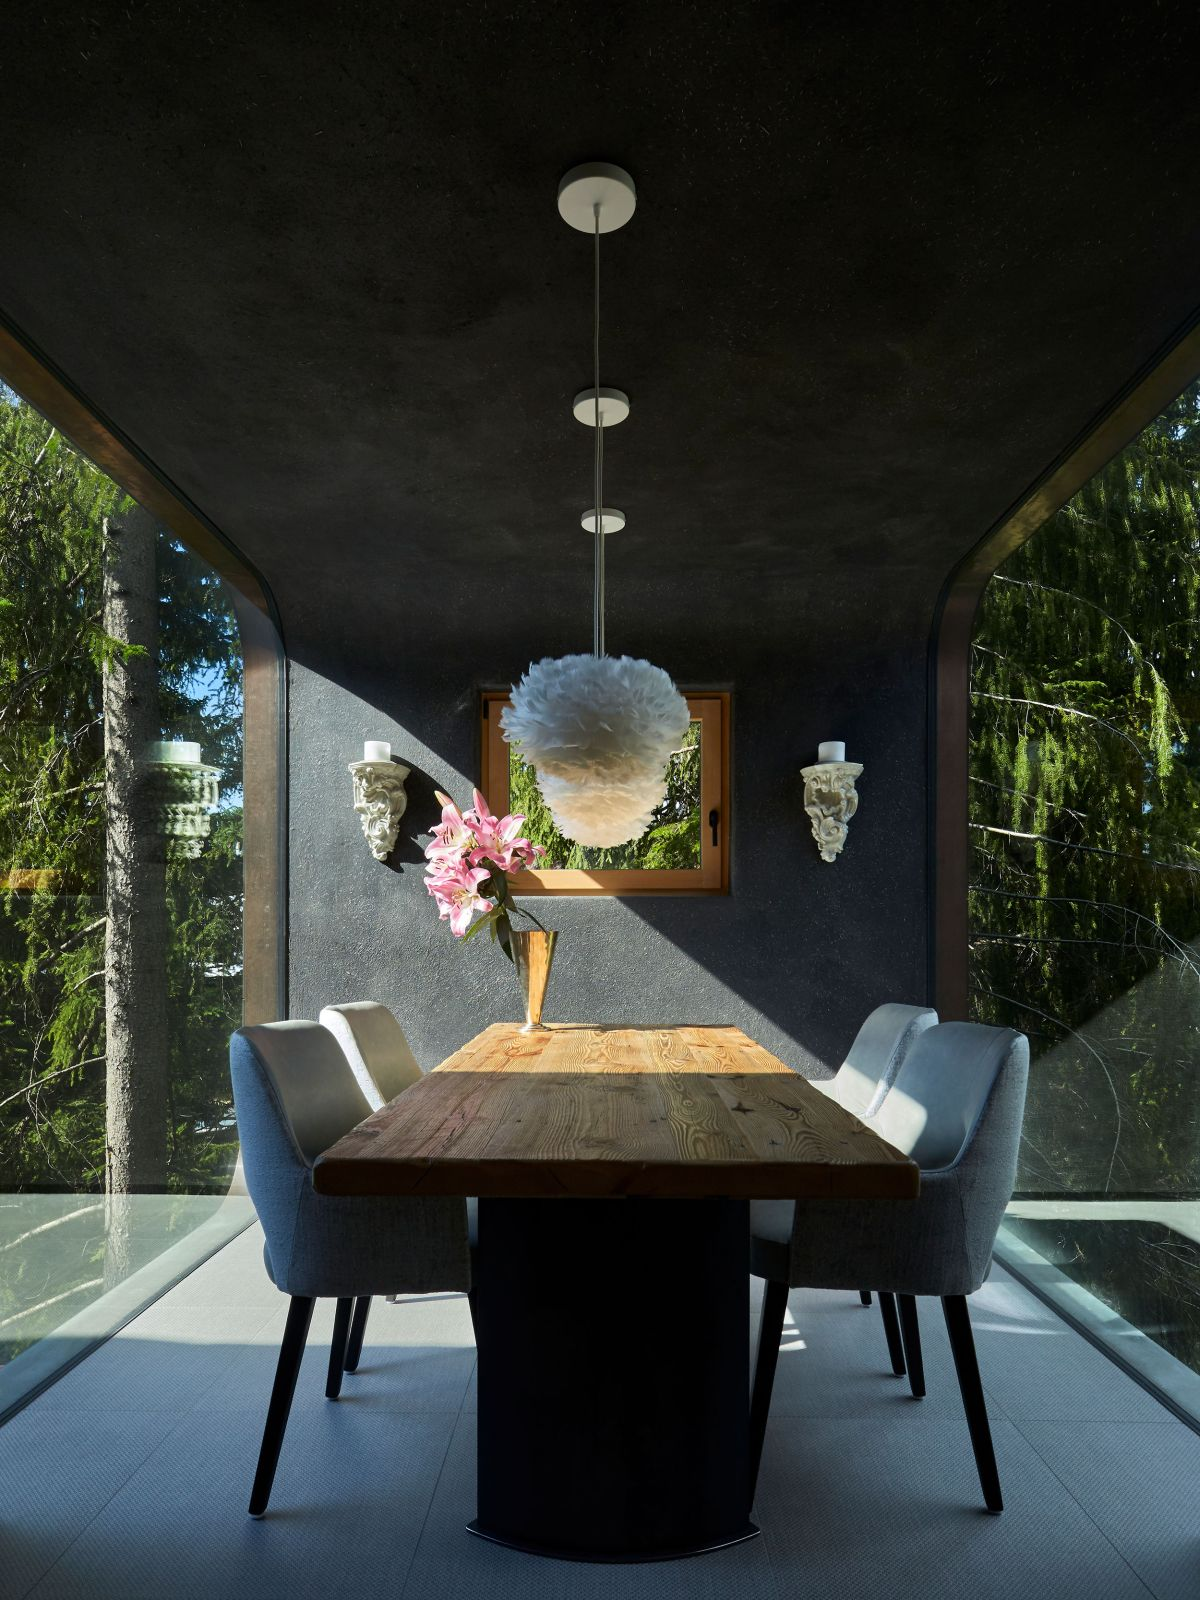 The dining room is exquisite, being framed by full-height windows on two sides